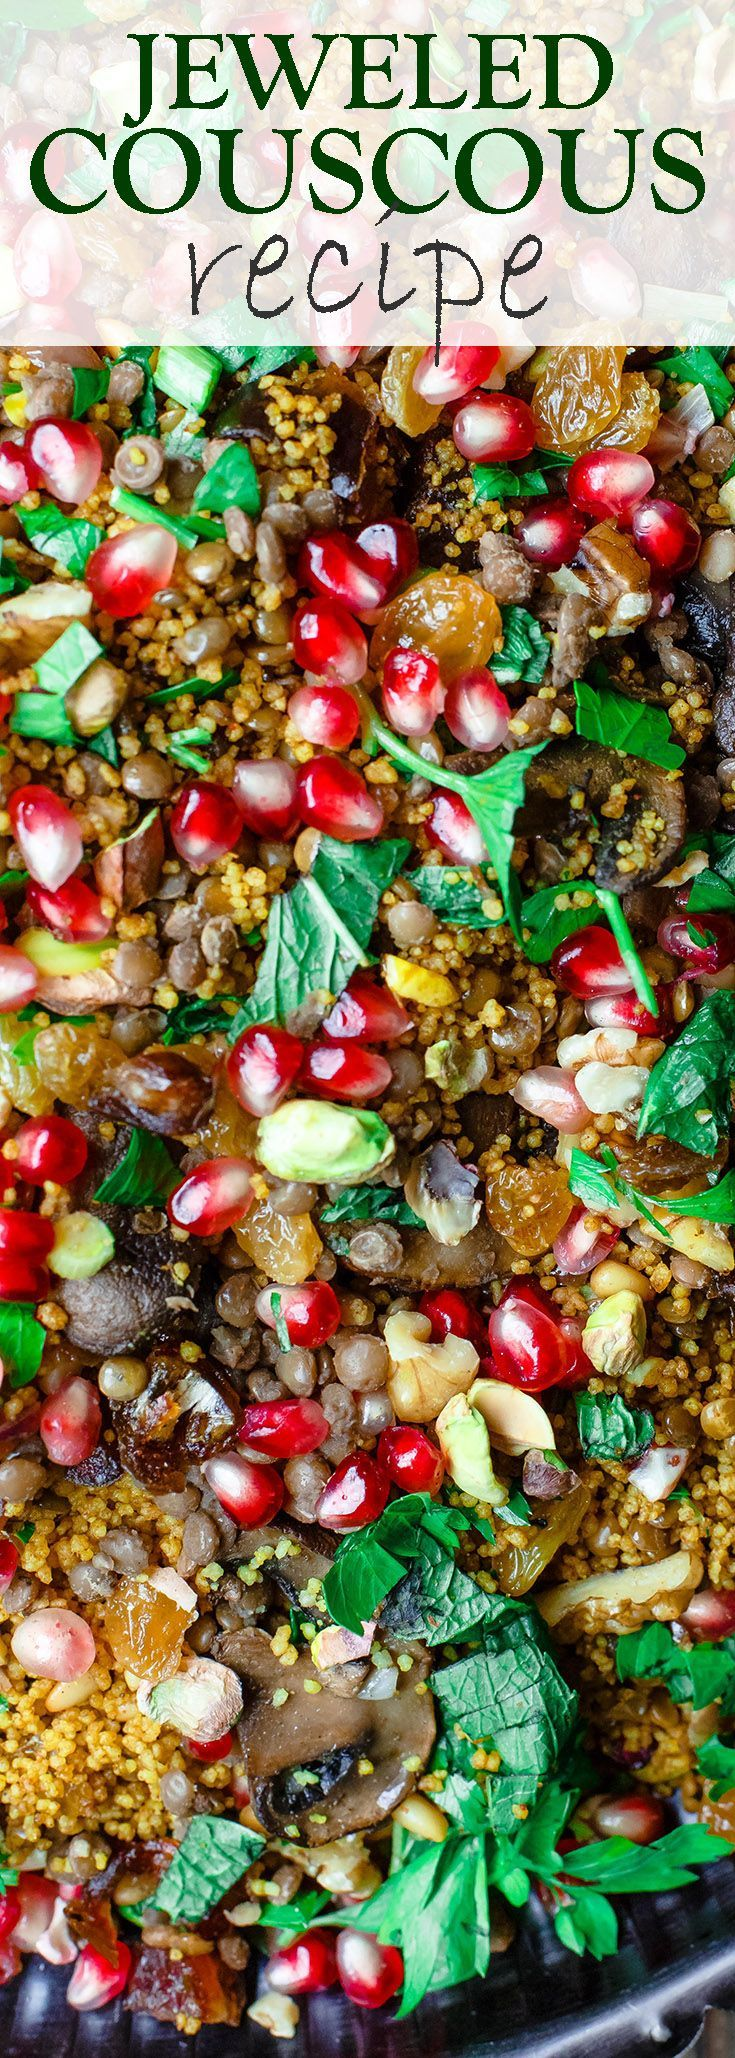 Jeweled Couscous Recipe with Pomegranate and Lentils | The Mediterranean Dish. An easy couscous recipe that makes the perfect side dish or salad! With lentils, nuts, pomegranate seeds, and flavor-packed with Mediterranean spices. Makes any dinner special!